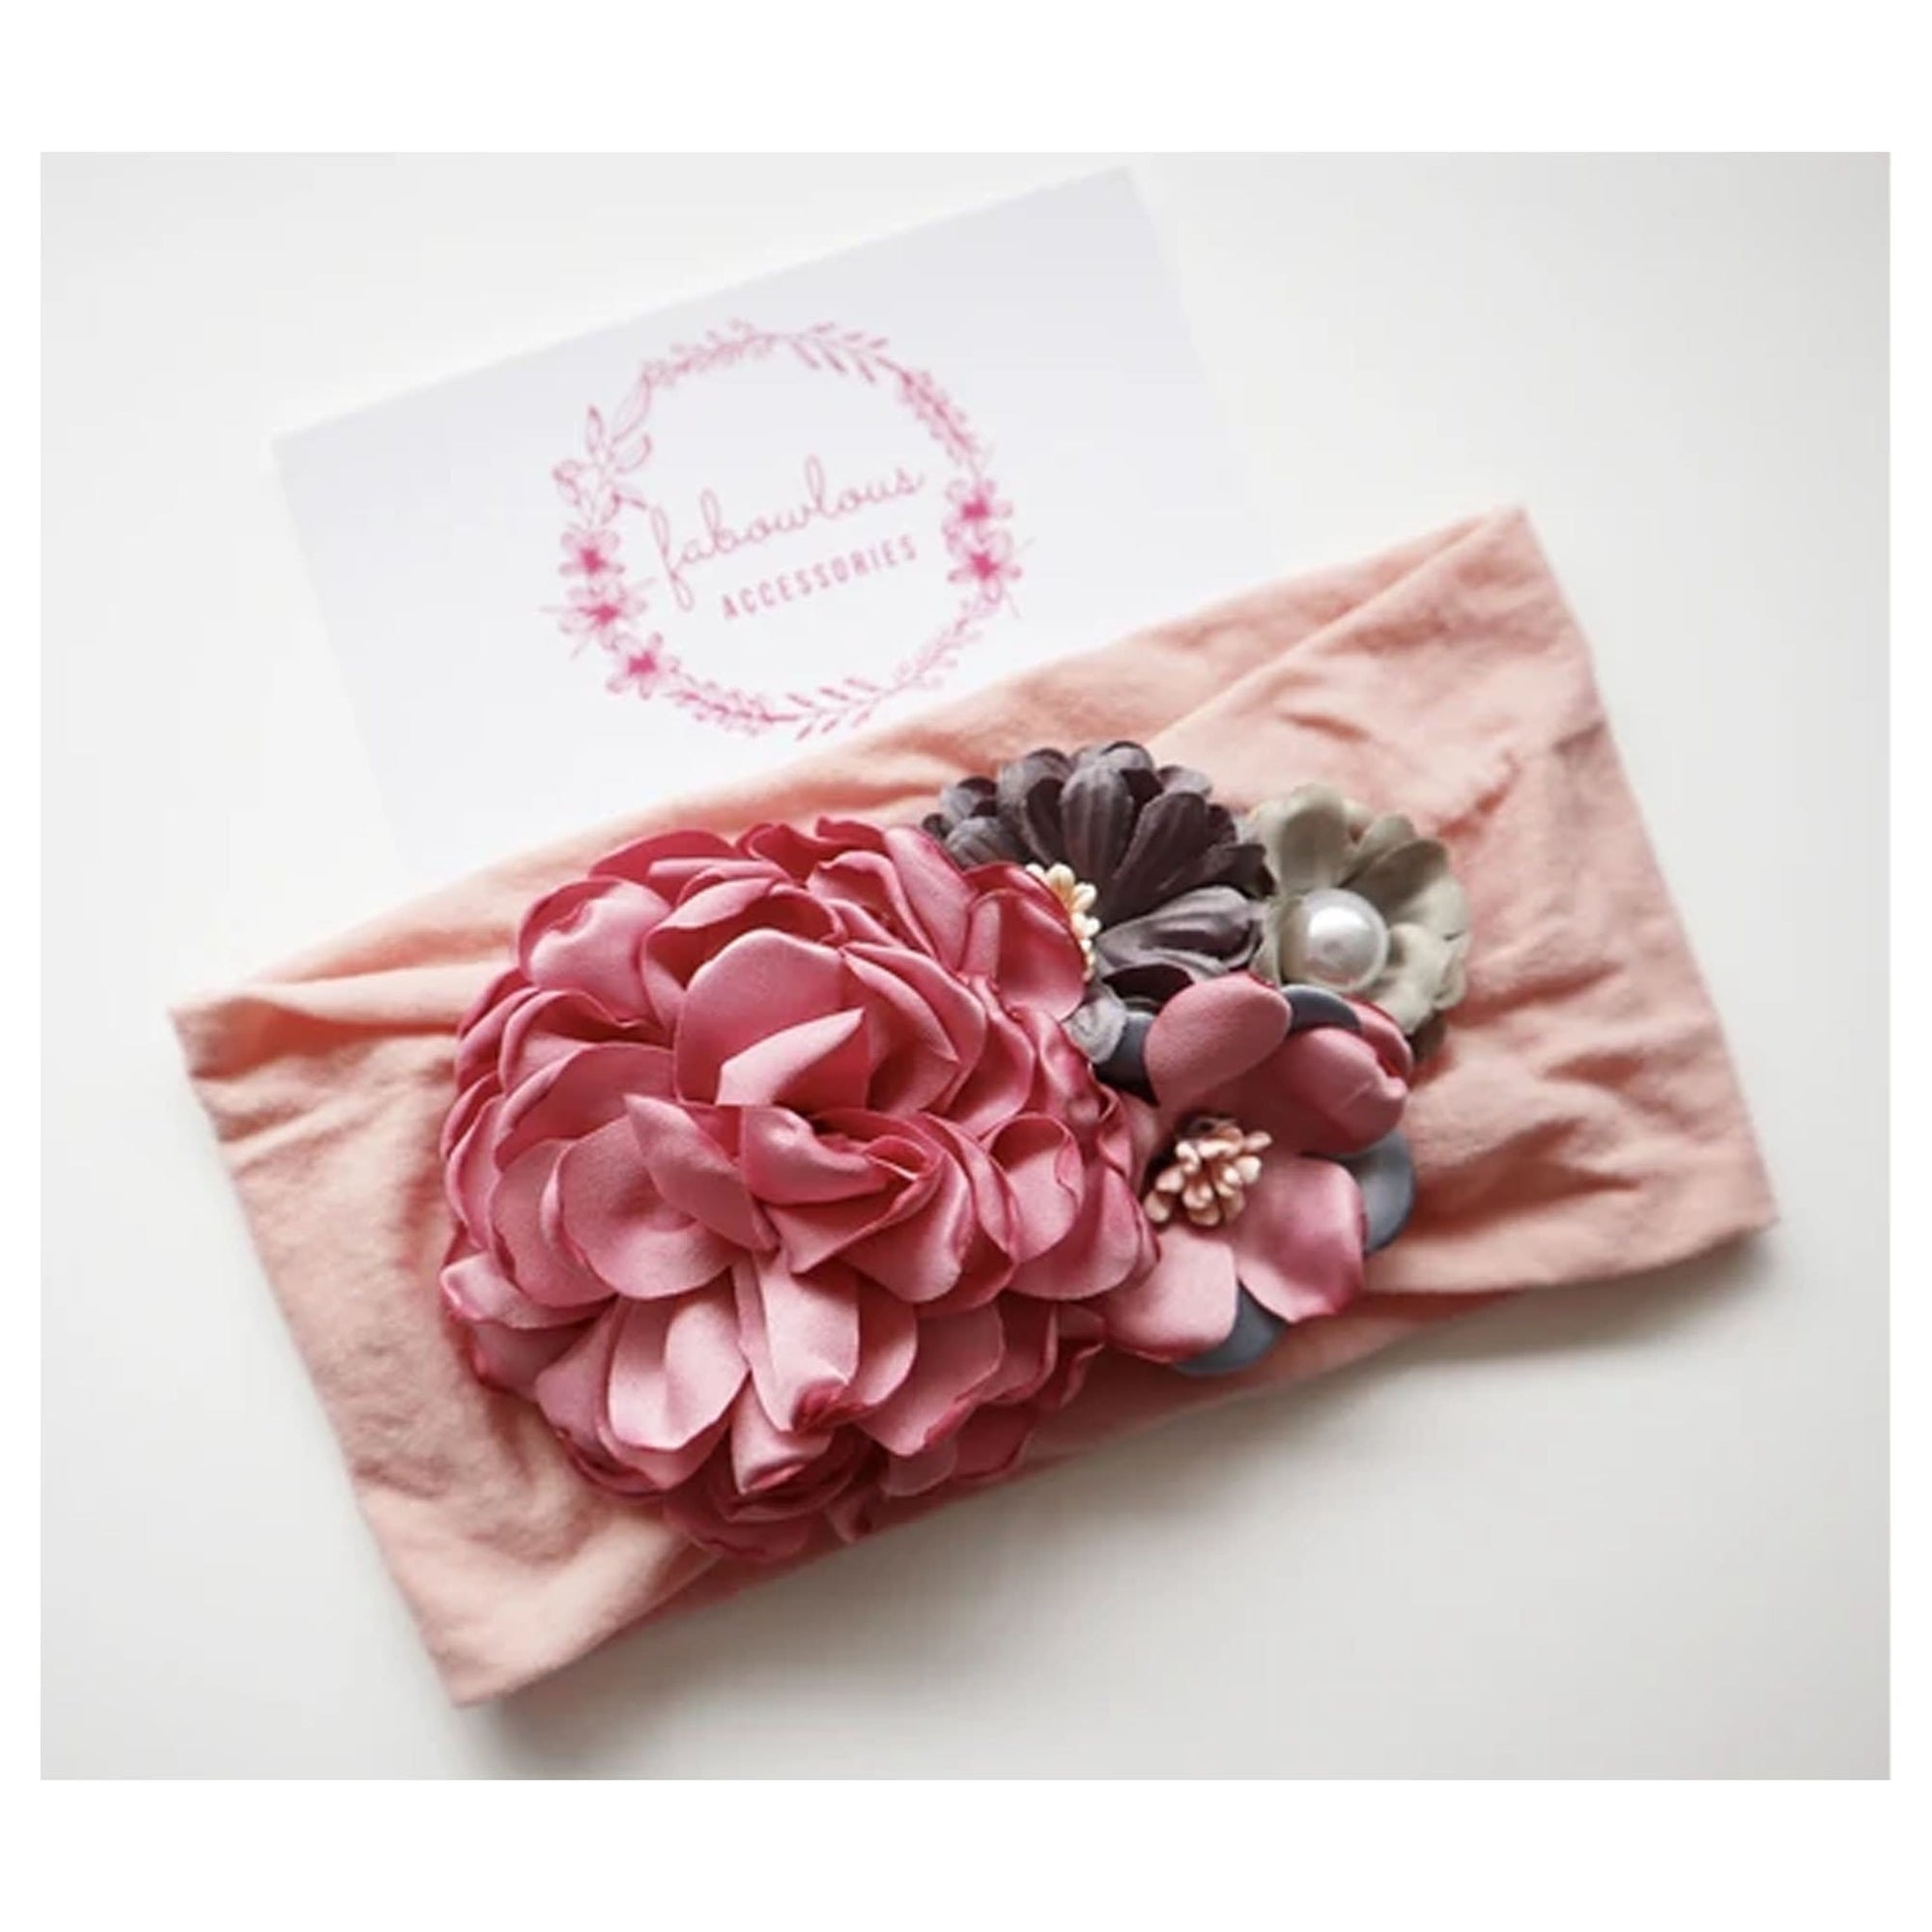 Fabowlous Accessories Amelia Floral Headband (4961871724675)